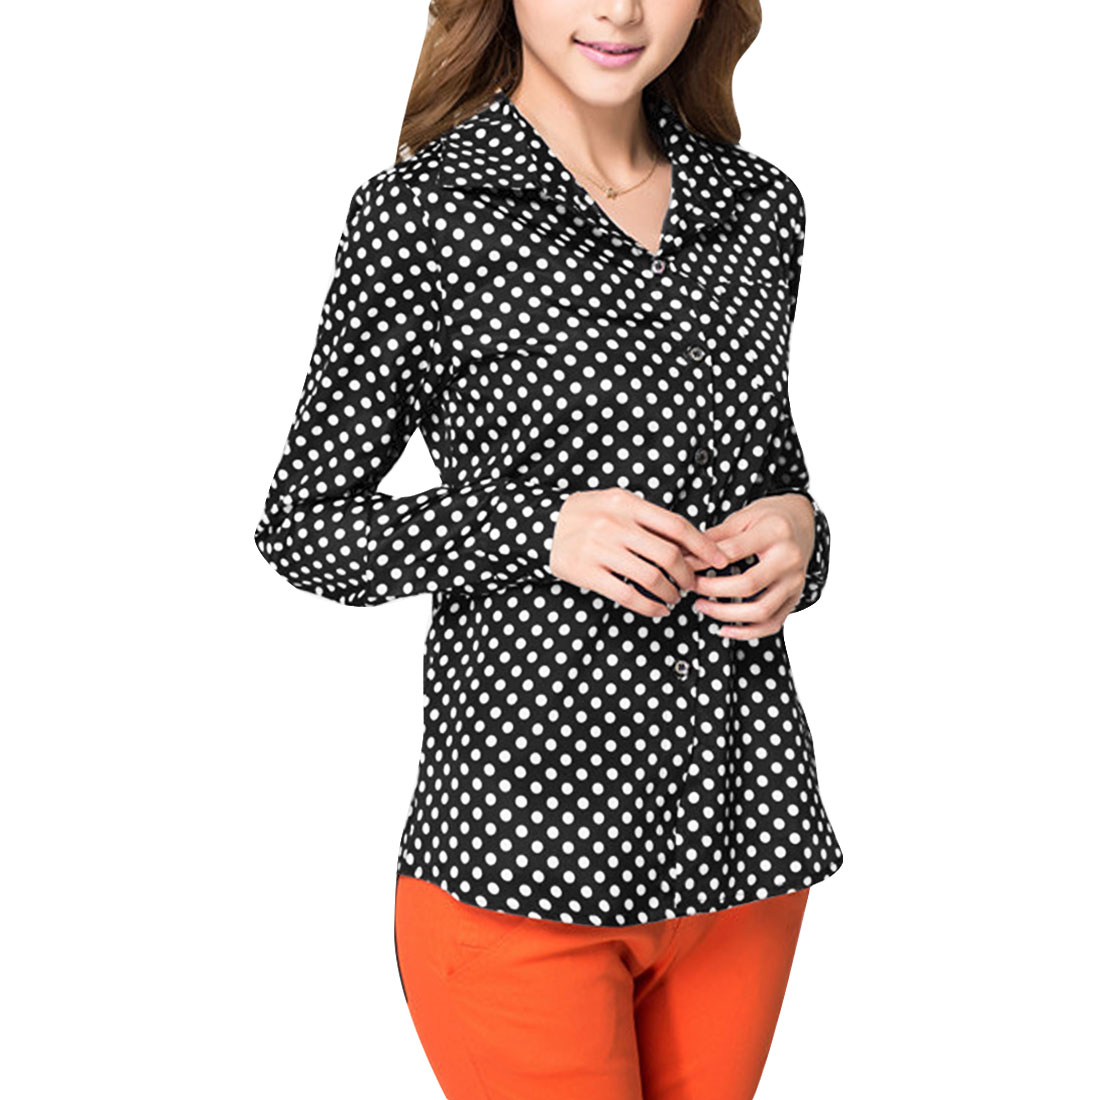 Woman Chic Polka Dots Pattern Spring Black Button Down Shirt S